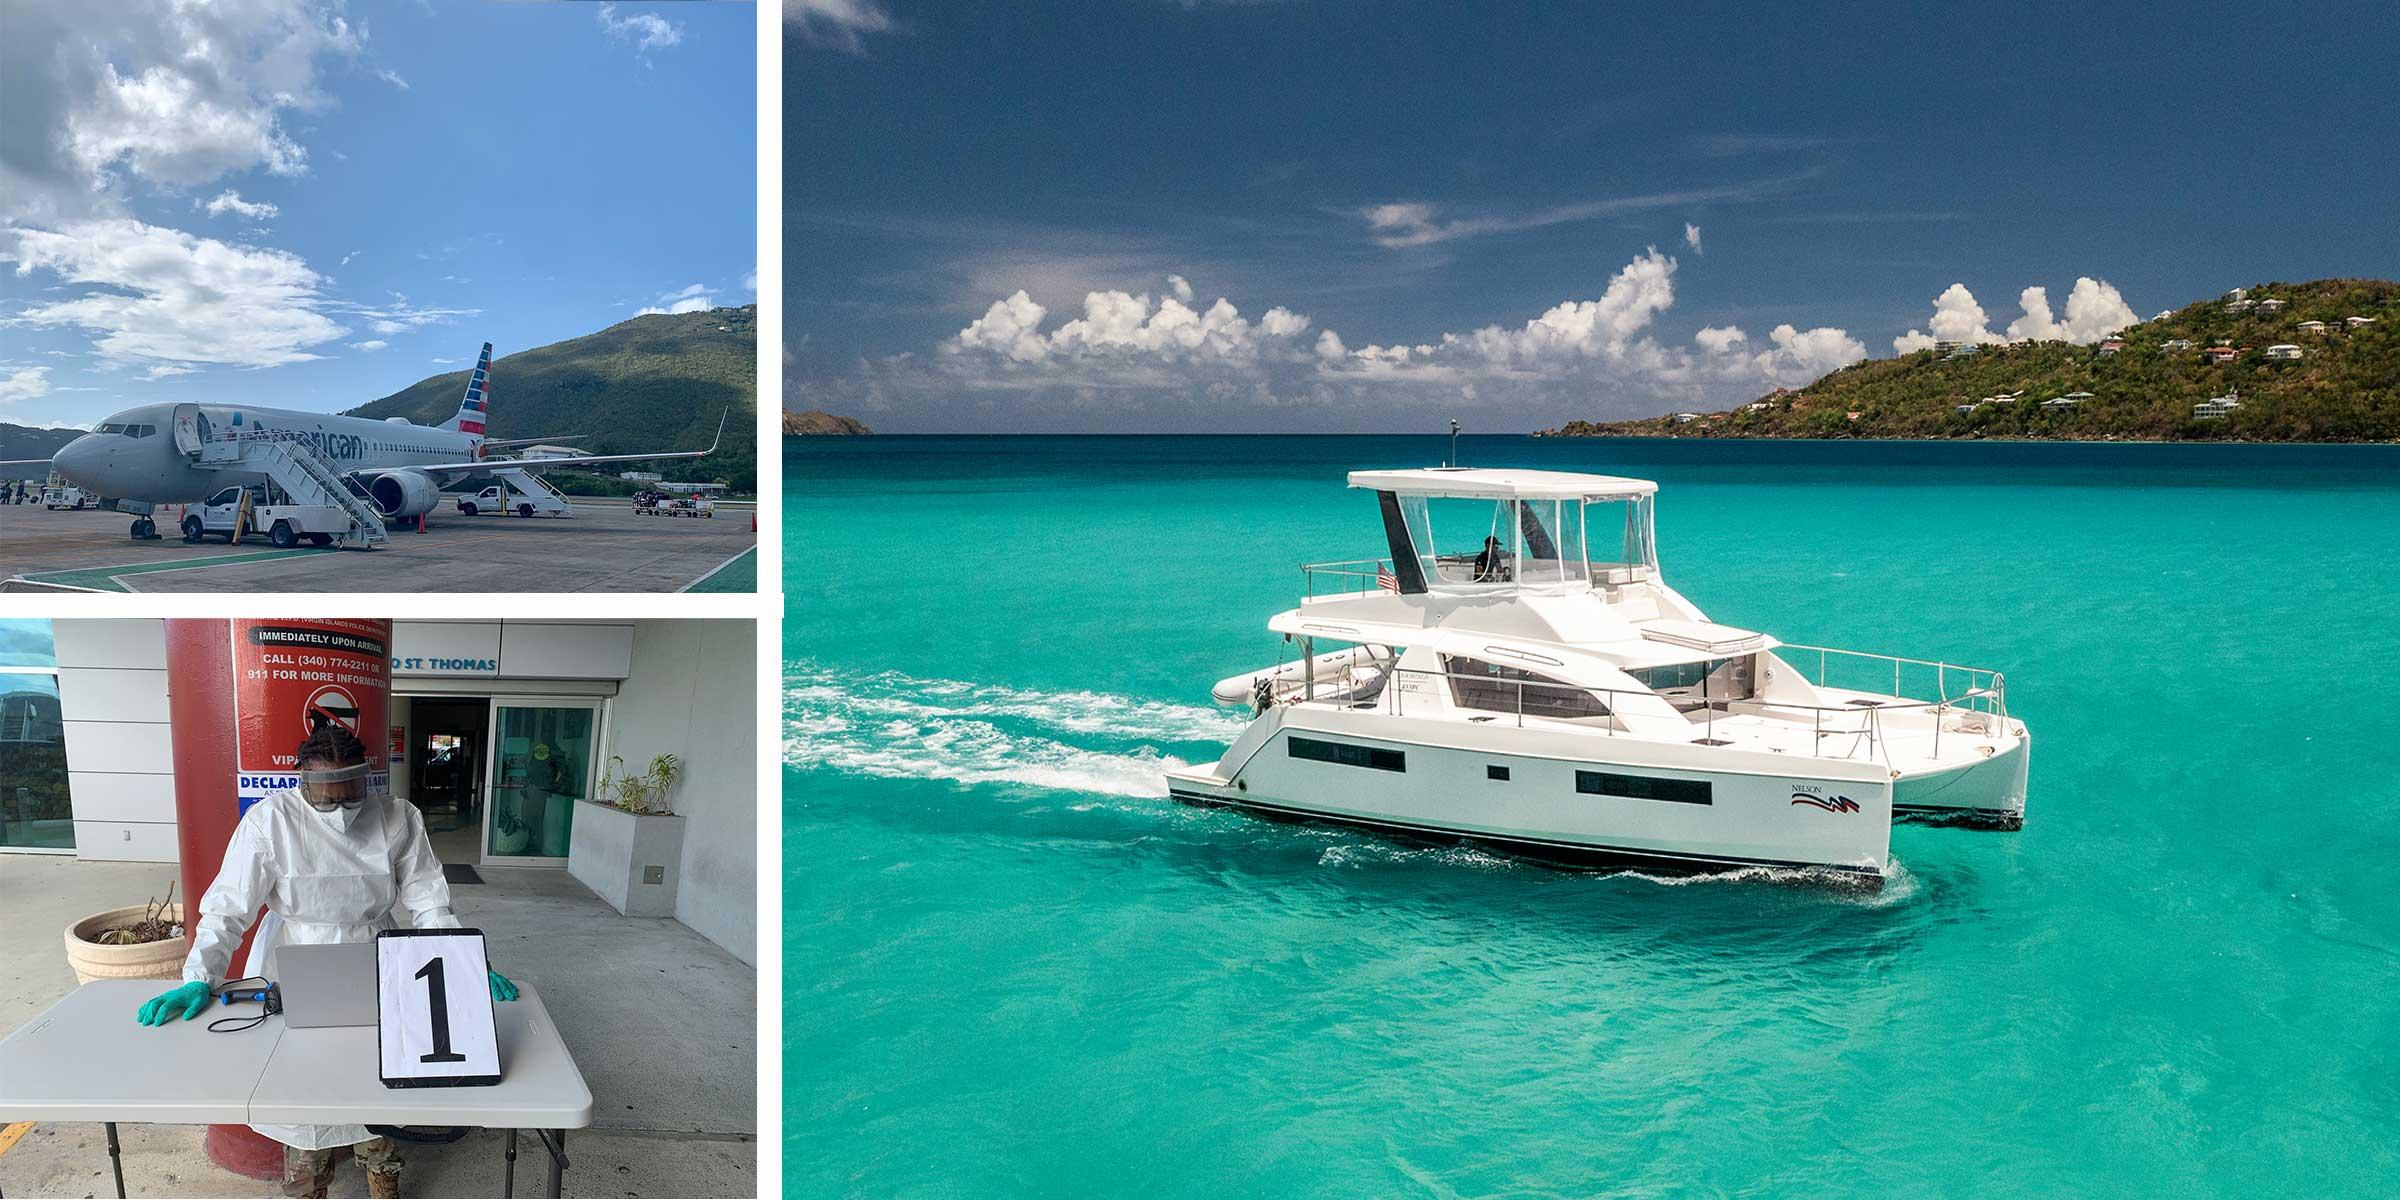 St. Thomas Airport and the Moorings 433PC at Magen's Bay in the USVI